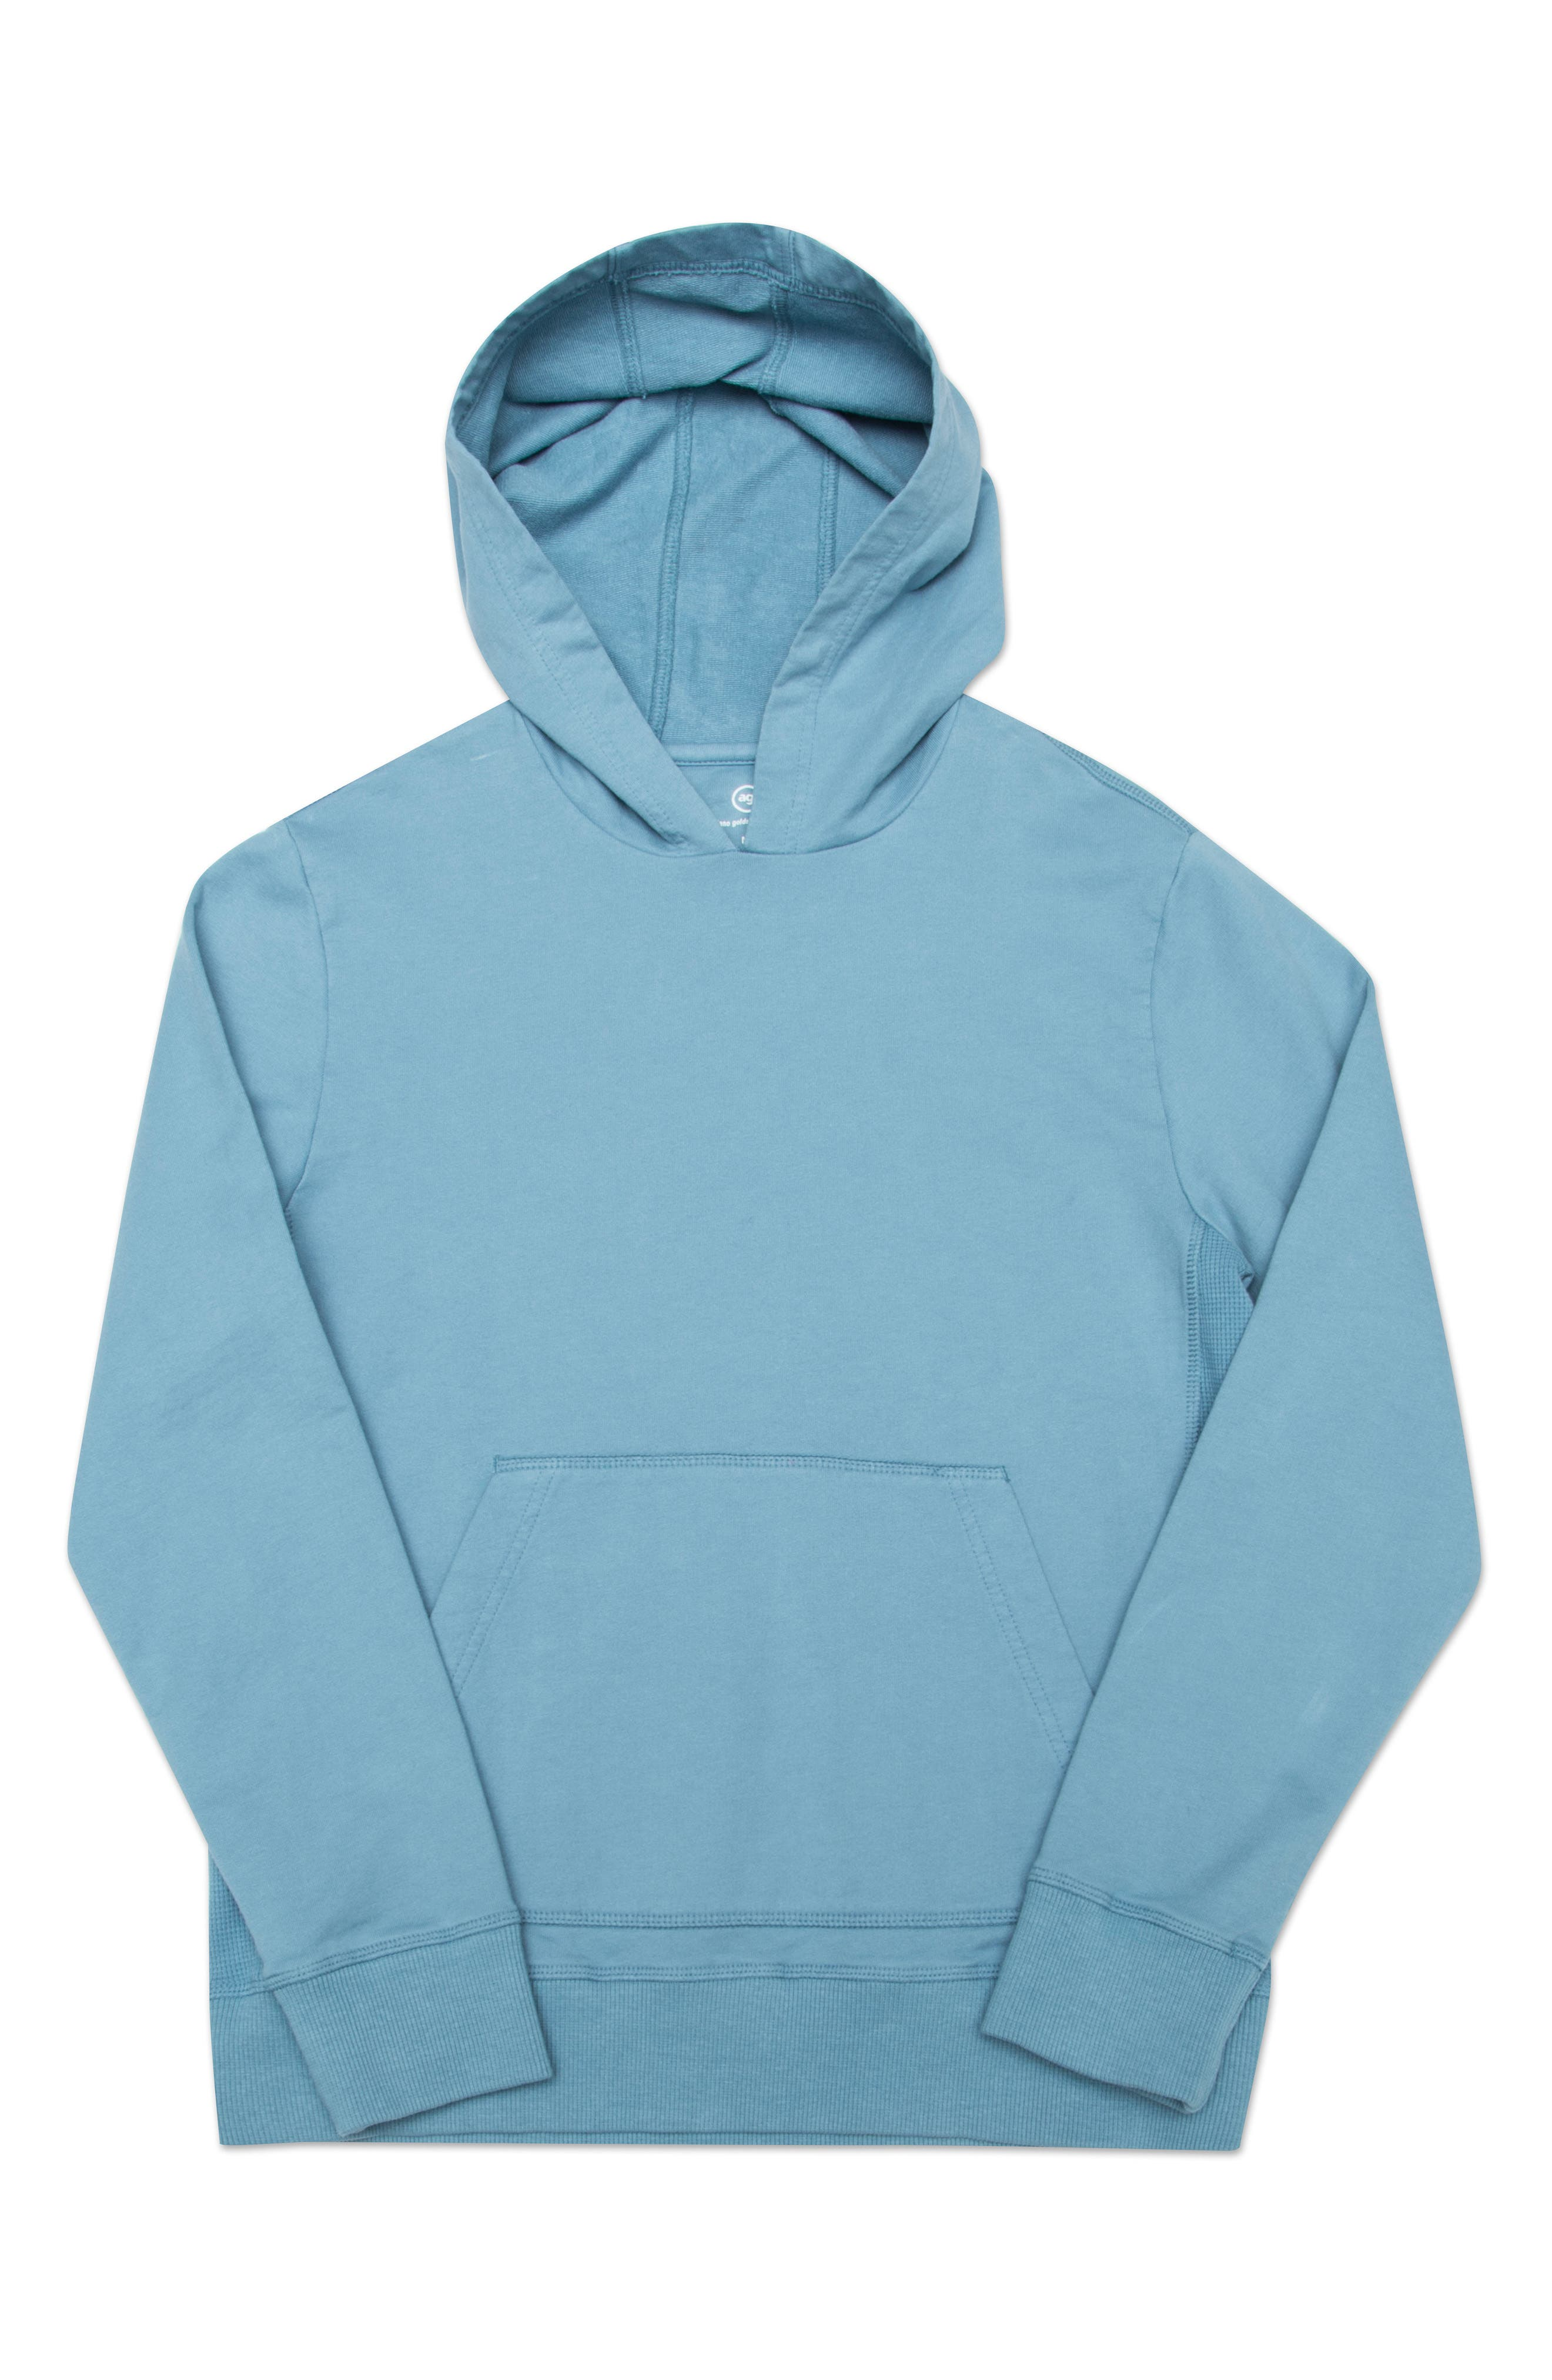 AG ADRIANO GOLDSCHMIED KIDS,                             Cain Hoodie,                             Main thumbnail 1, color,                             416